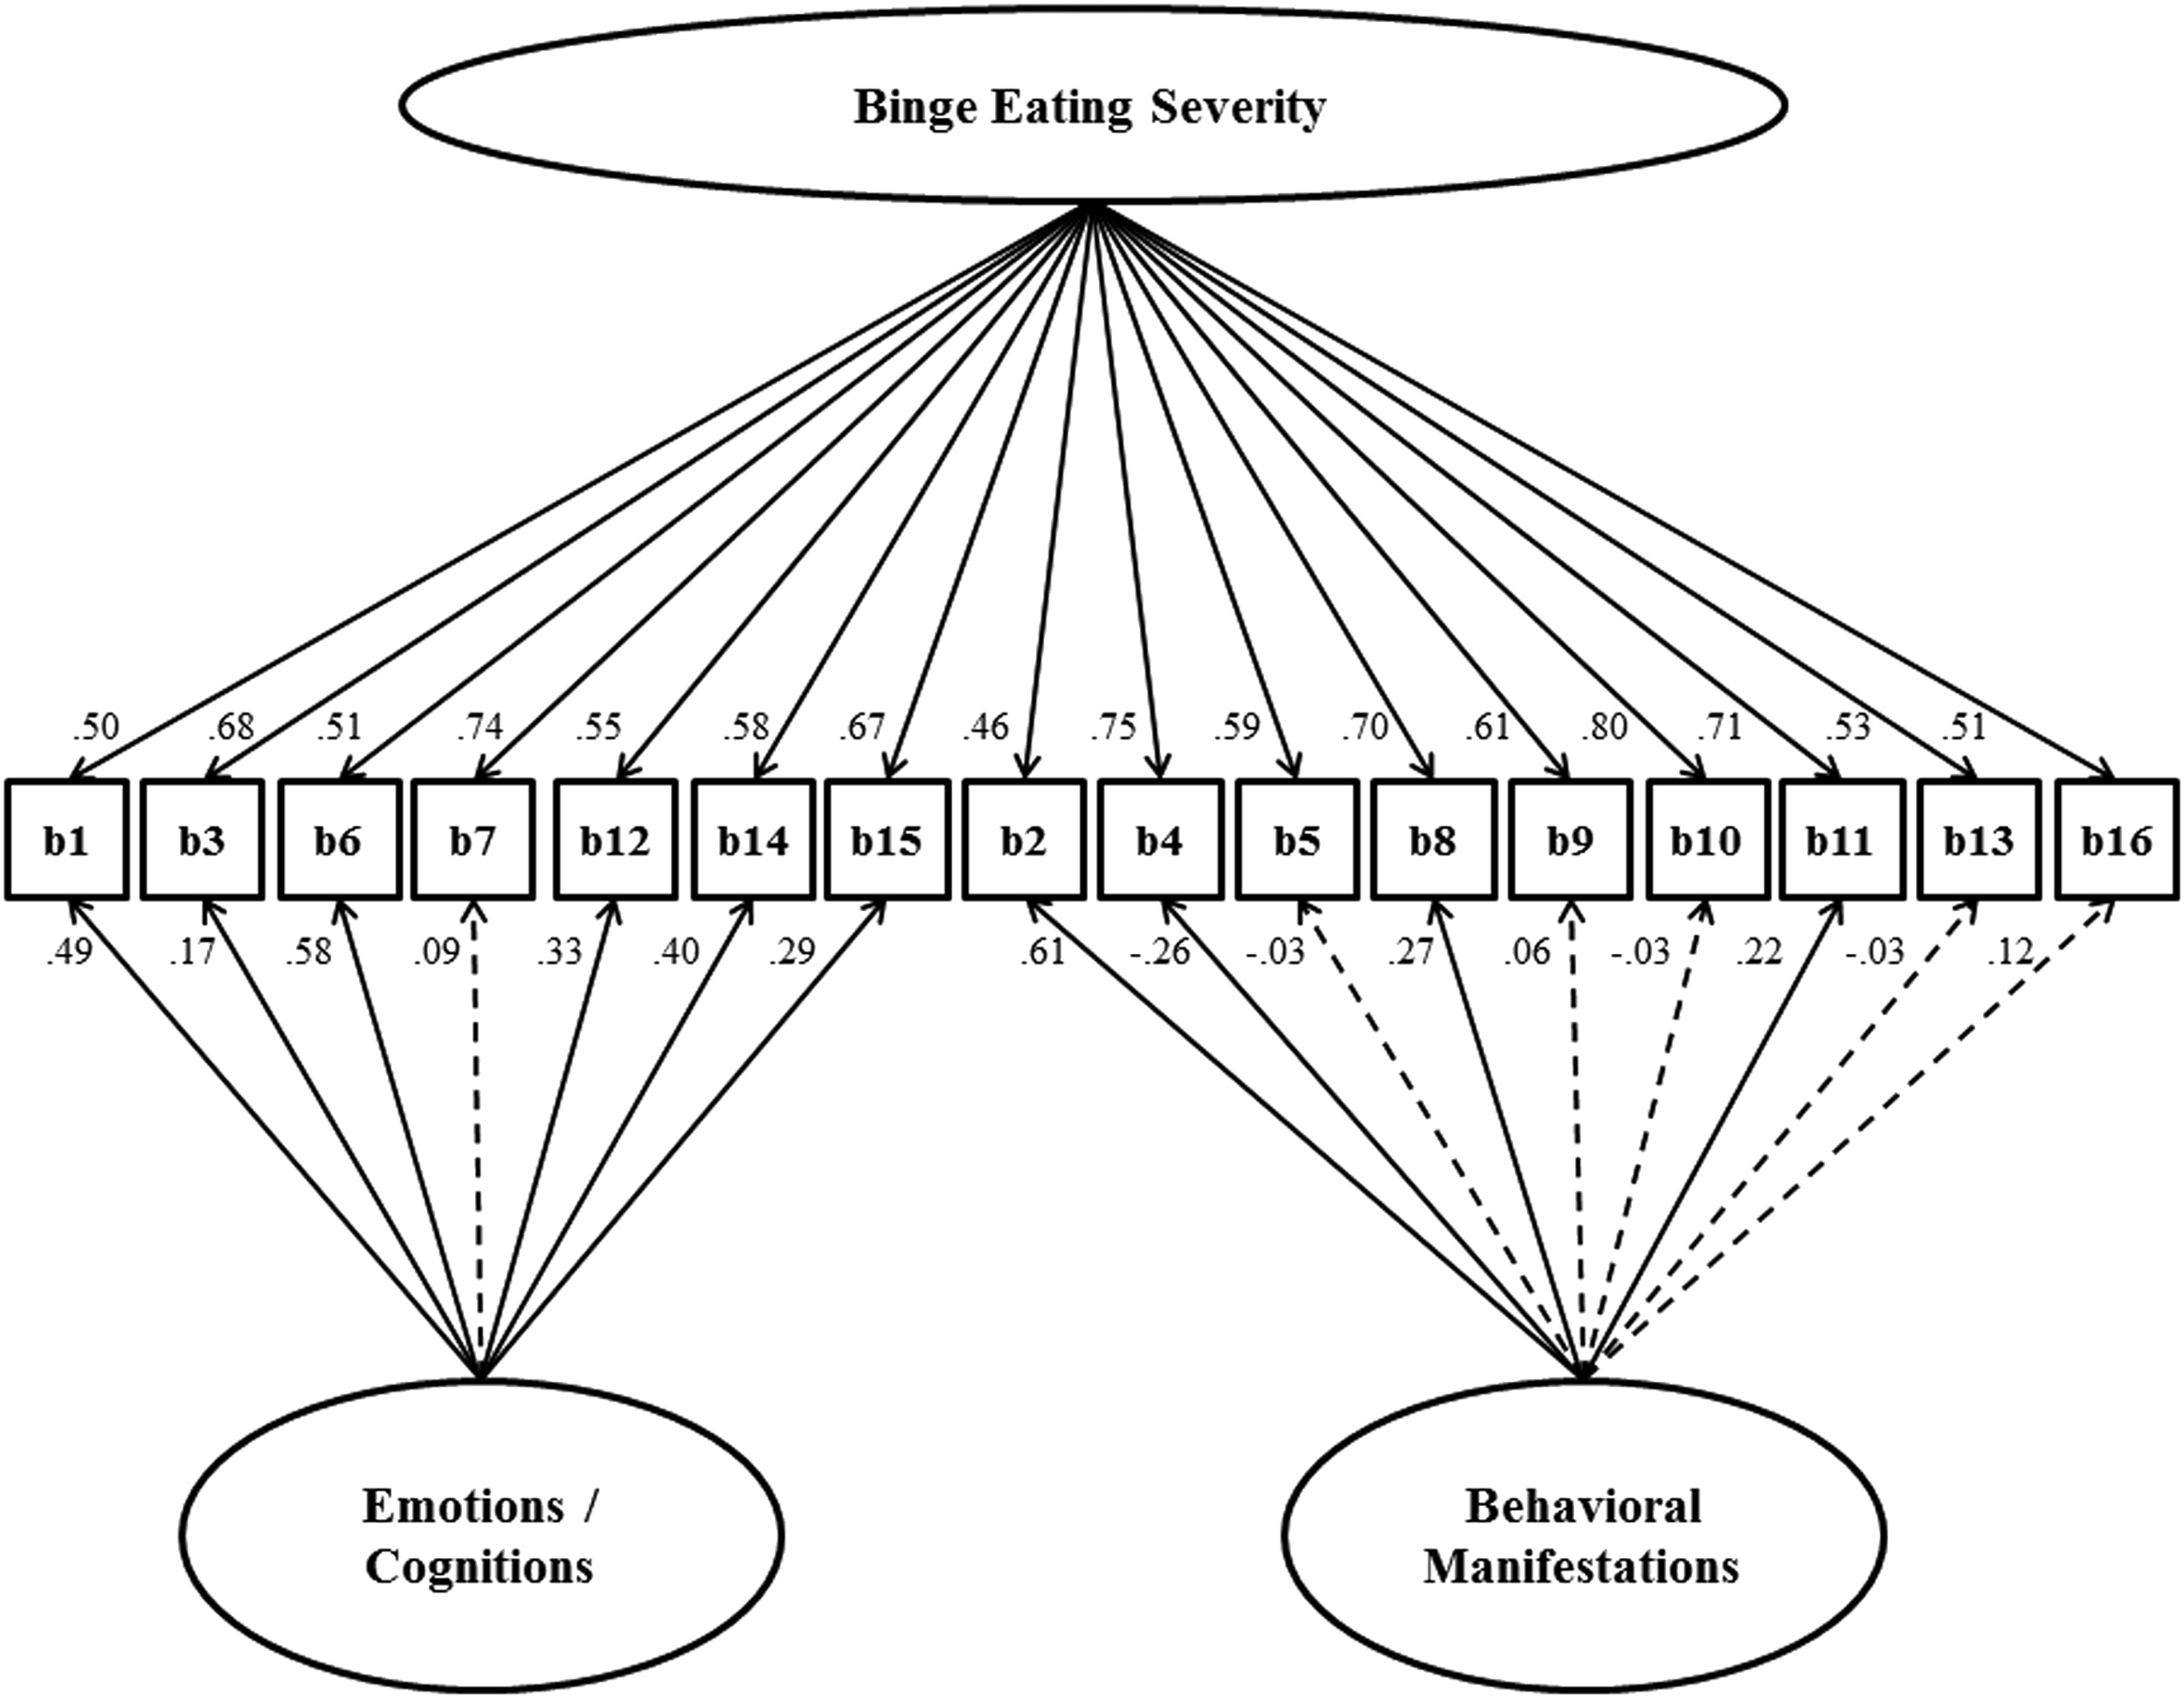 Replication and evaluation of a proposed two-factor Binge